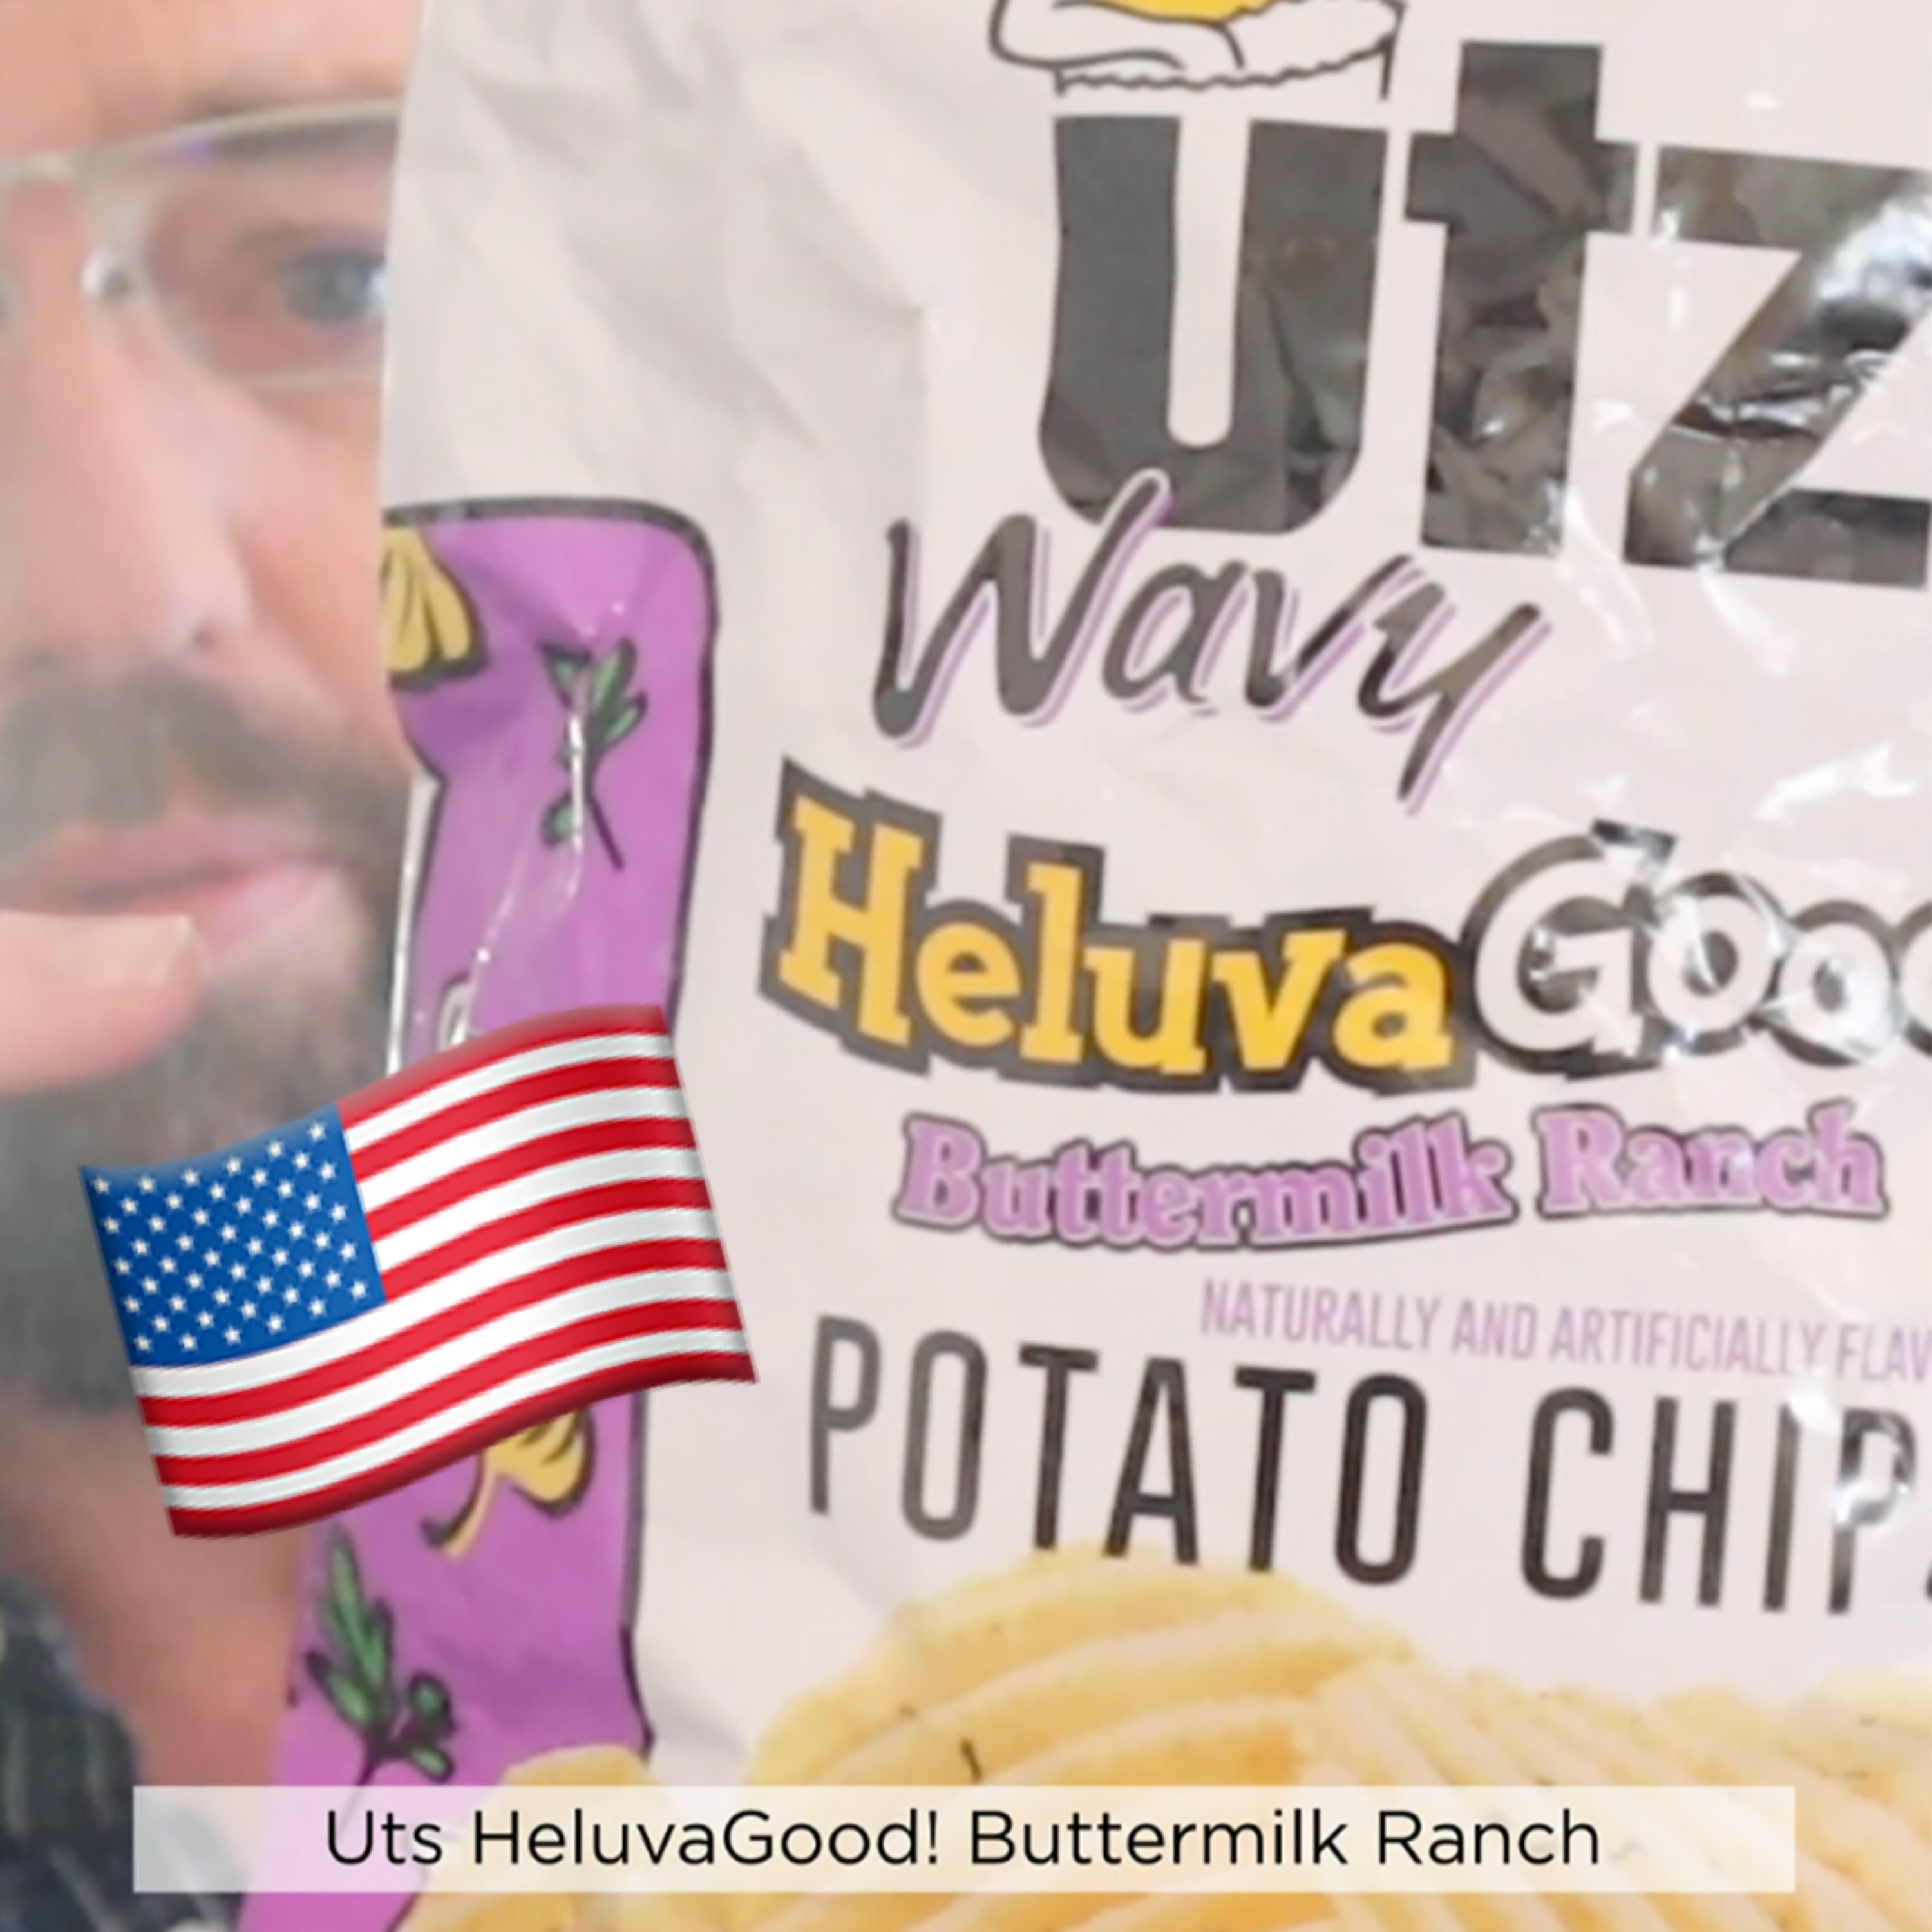 ?? Utz Buttermilk Ranch potato chips on In The Chips with Barry